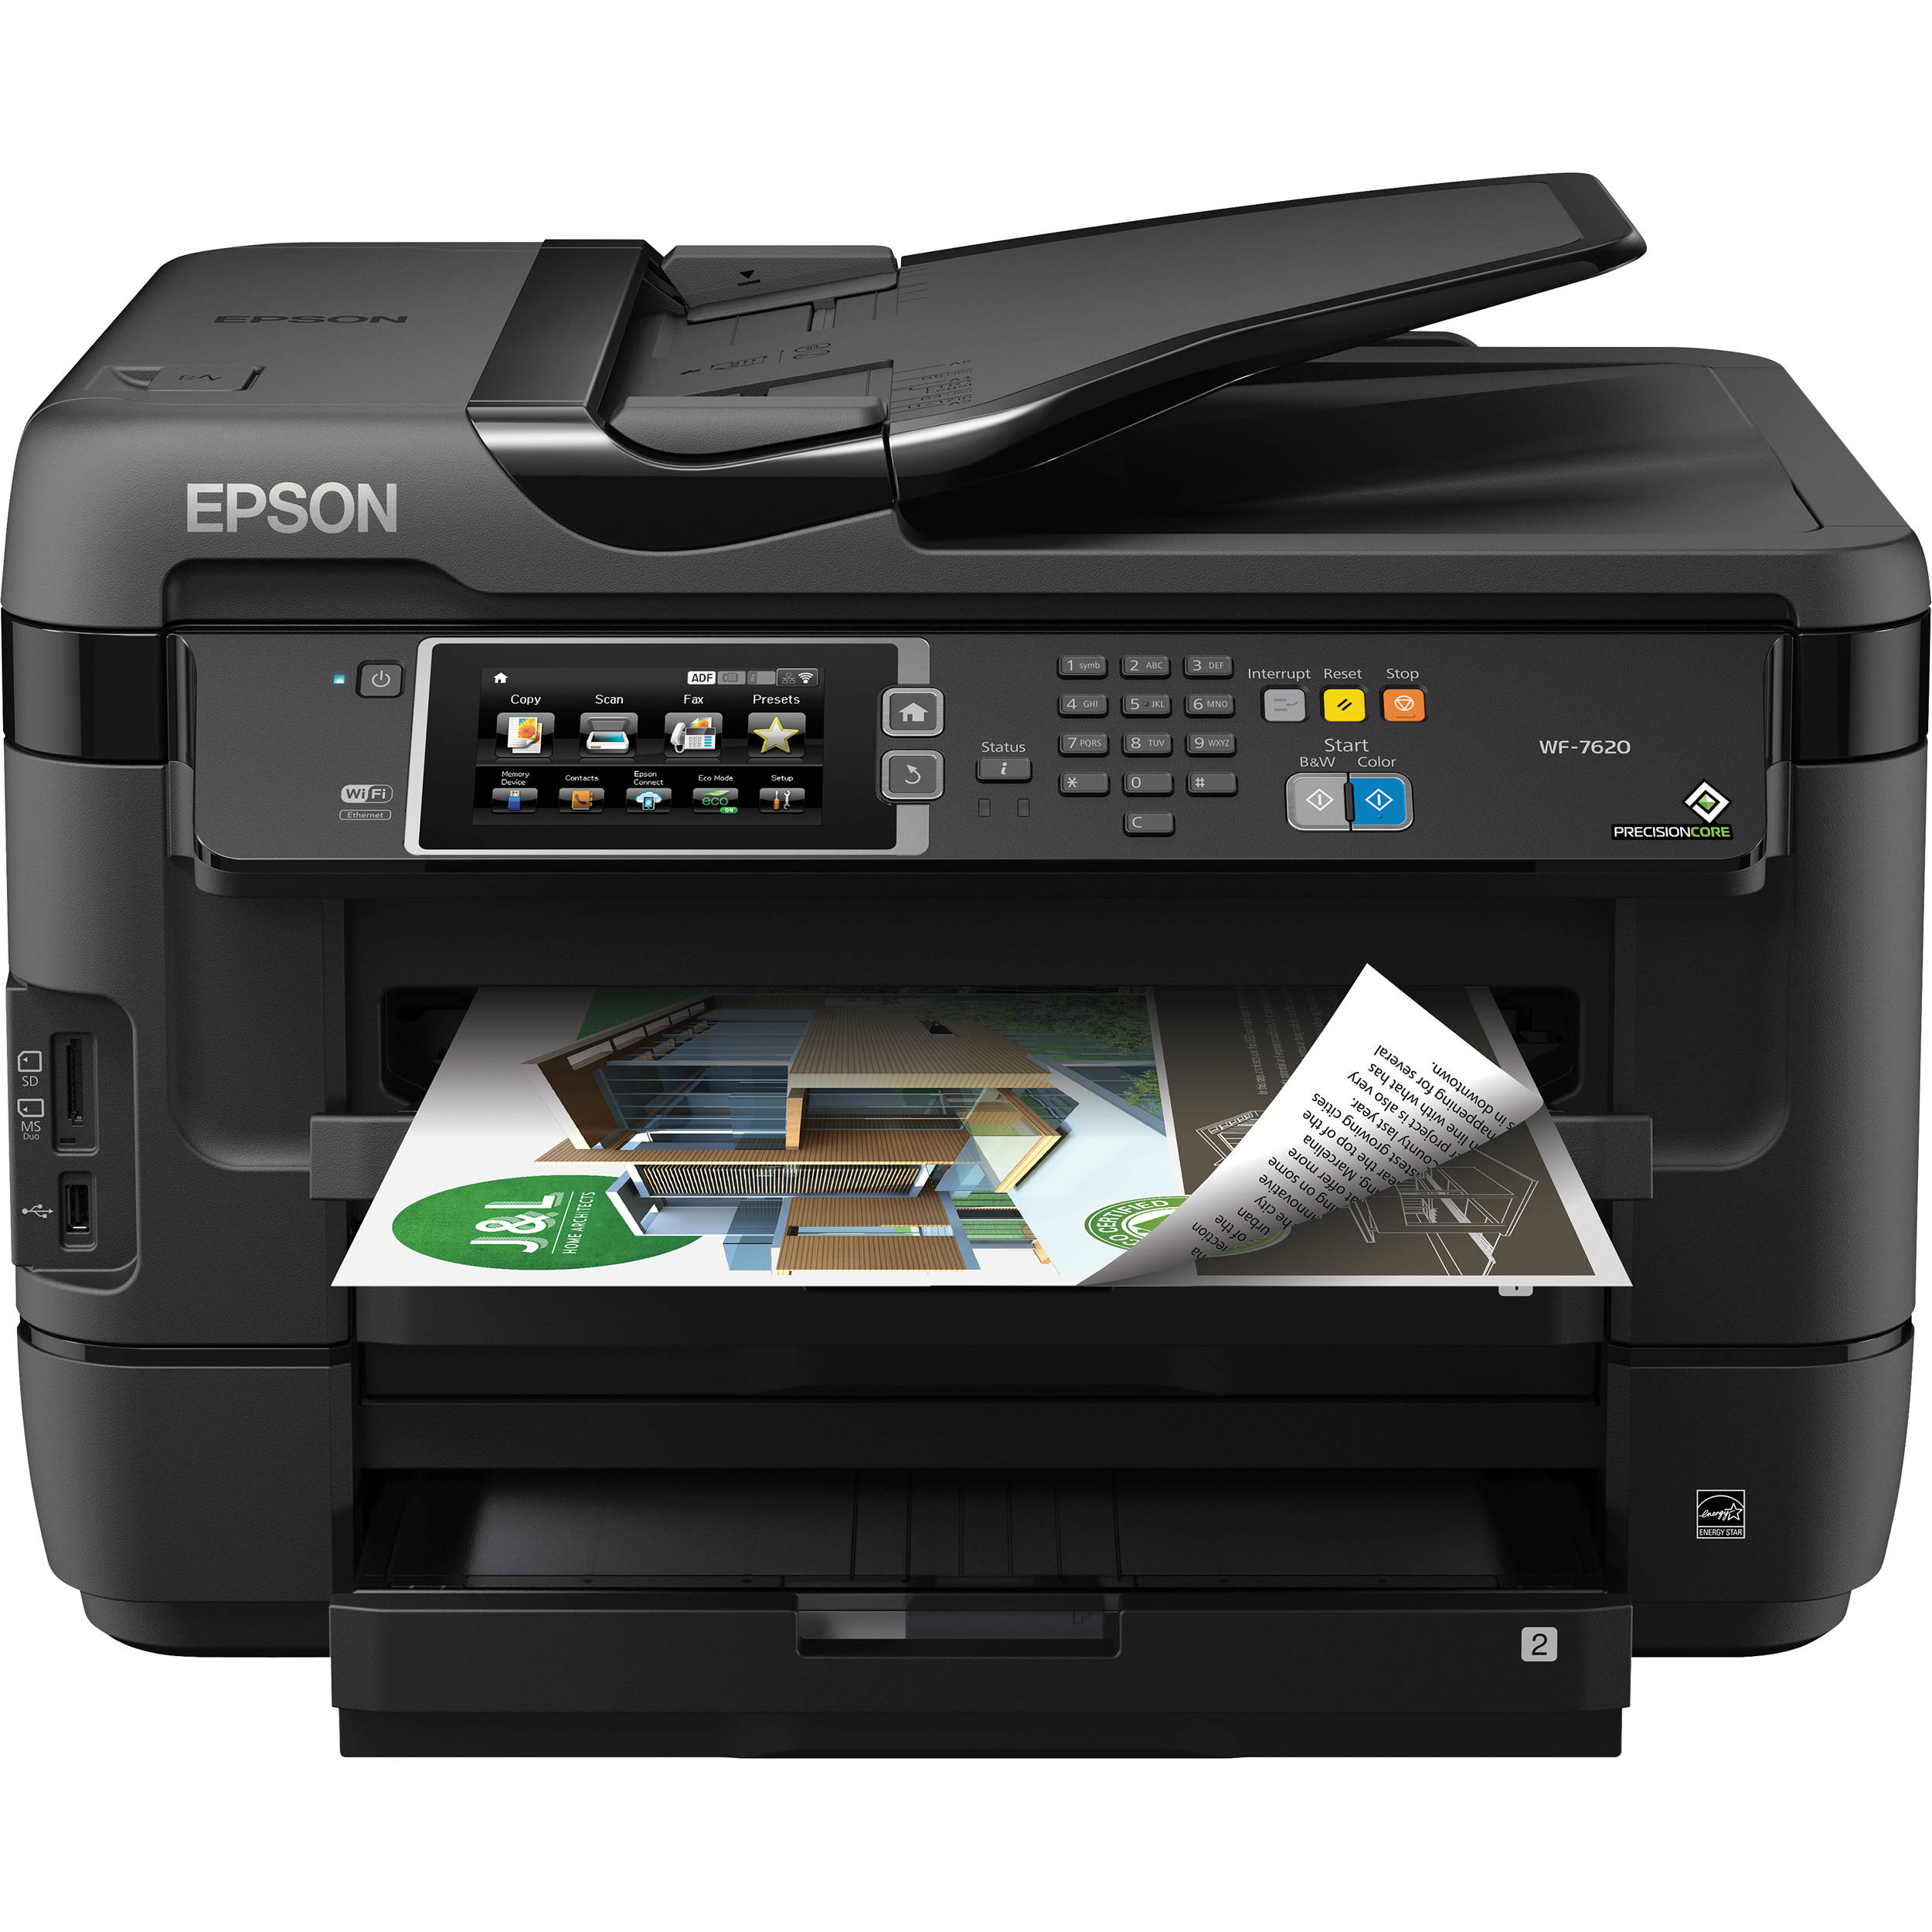 Epson Workforce Wf 7620 Wireless Color All In One